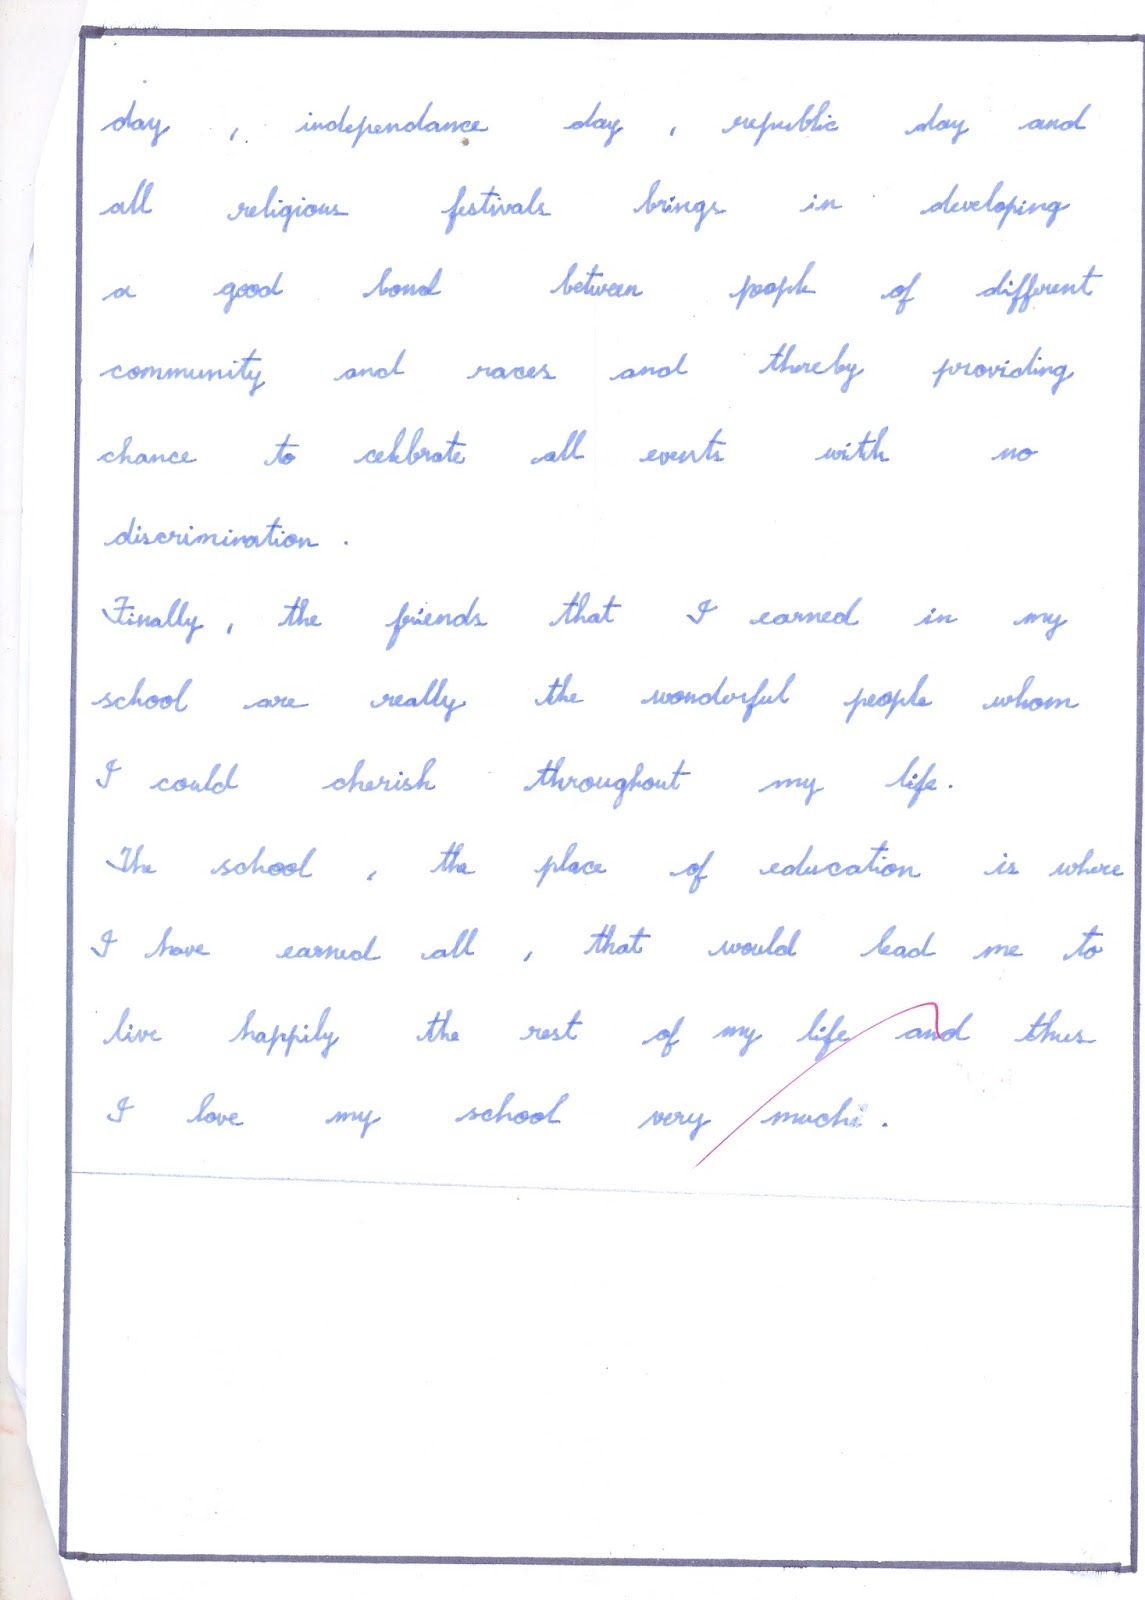 Personal Essay Samples For High School Why Do I Like My School Essay New Modern Vidhya Mandir Higher Secondary  School Write A Remembering My First Day  How To Write A College Essay Paper also English Literature Essay Structure Upward Bound  Uc Personal Statement My First Day At School Essay  The Importance Of English Essay